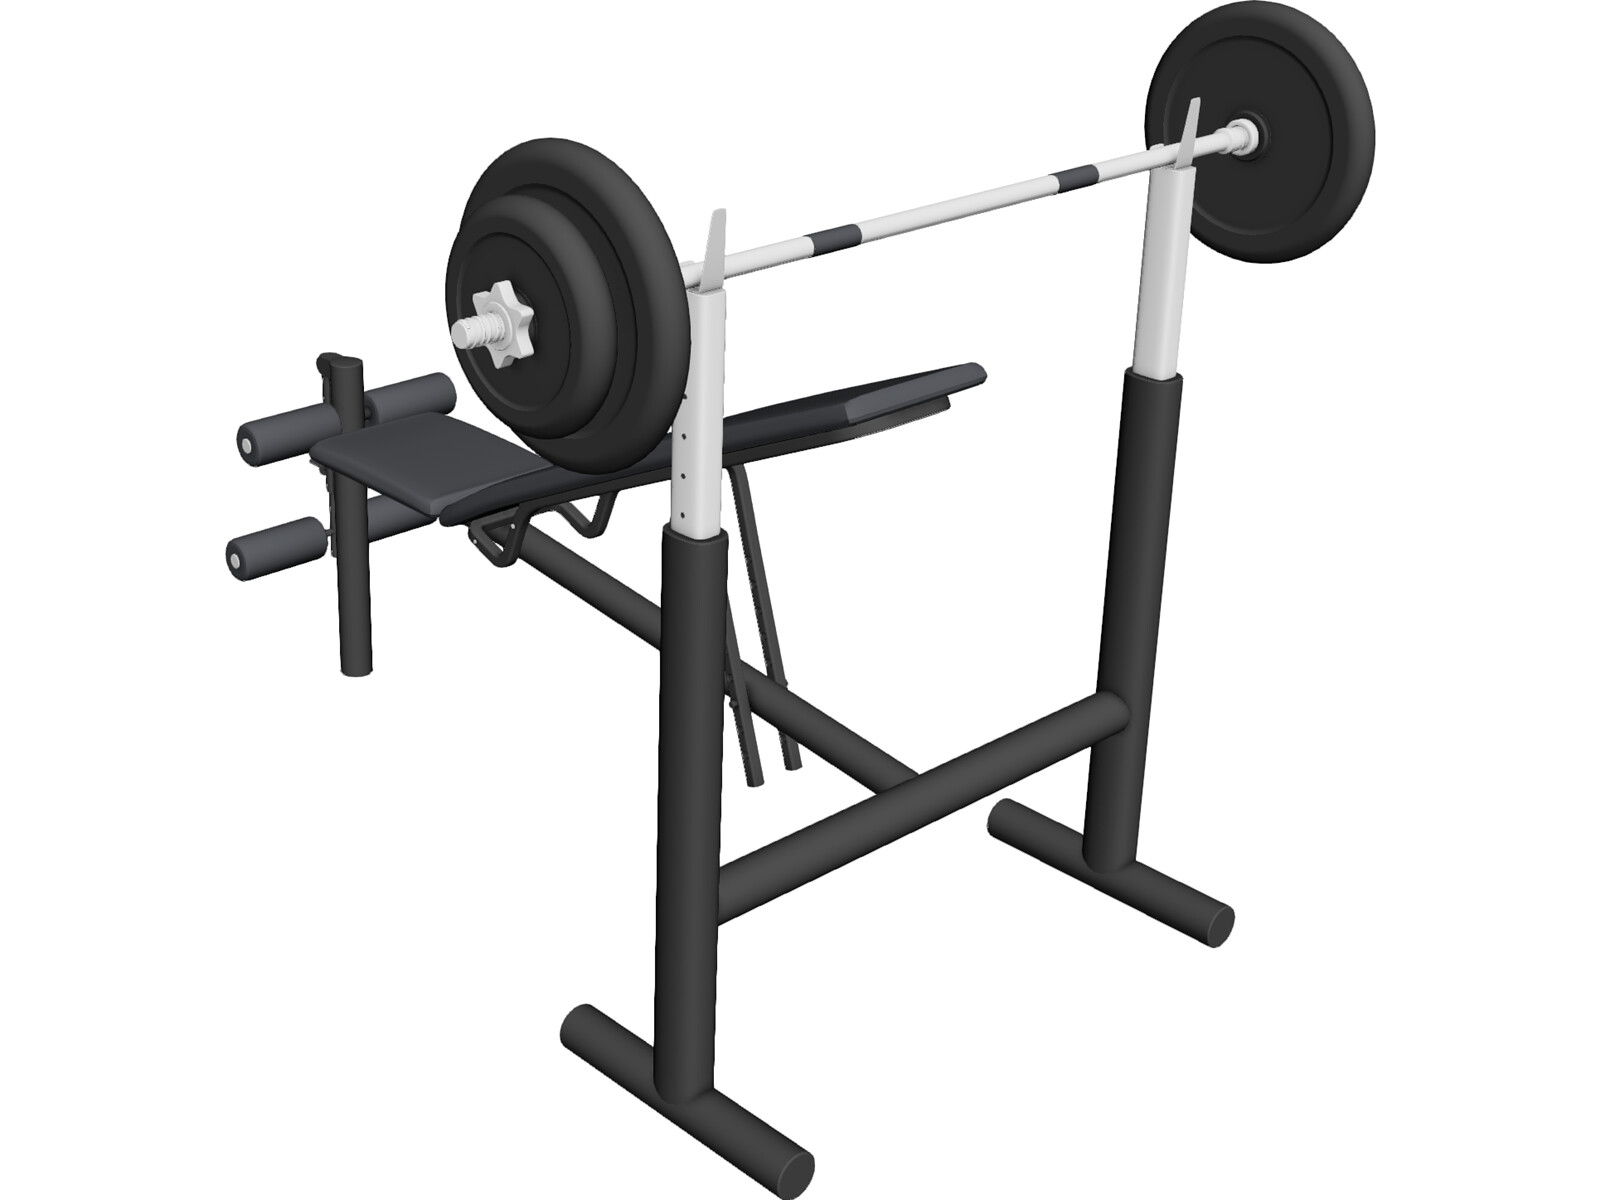 Flex Classic Seated Fitness Strenght